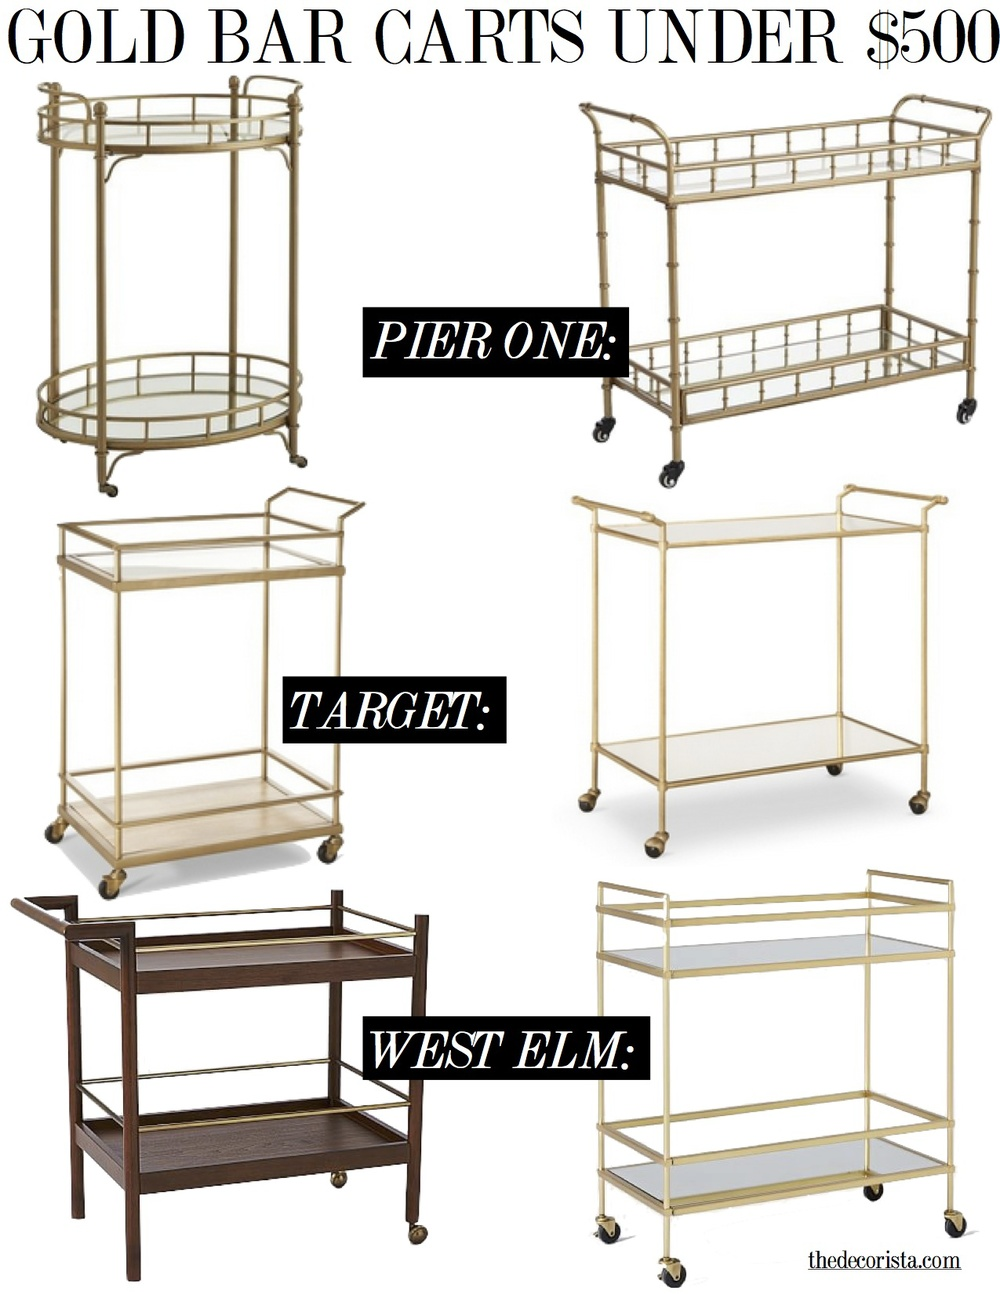 gold bar carts under $500 -the decorista